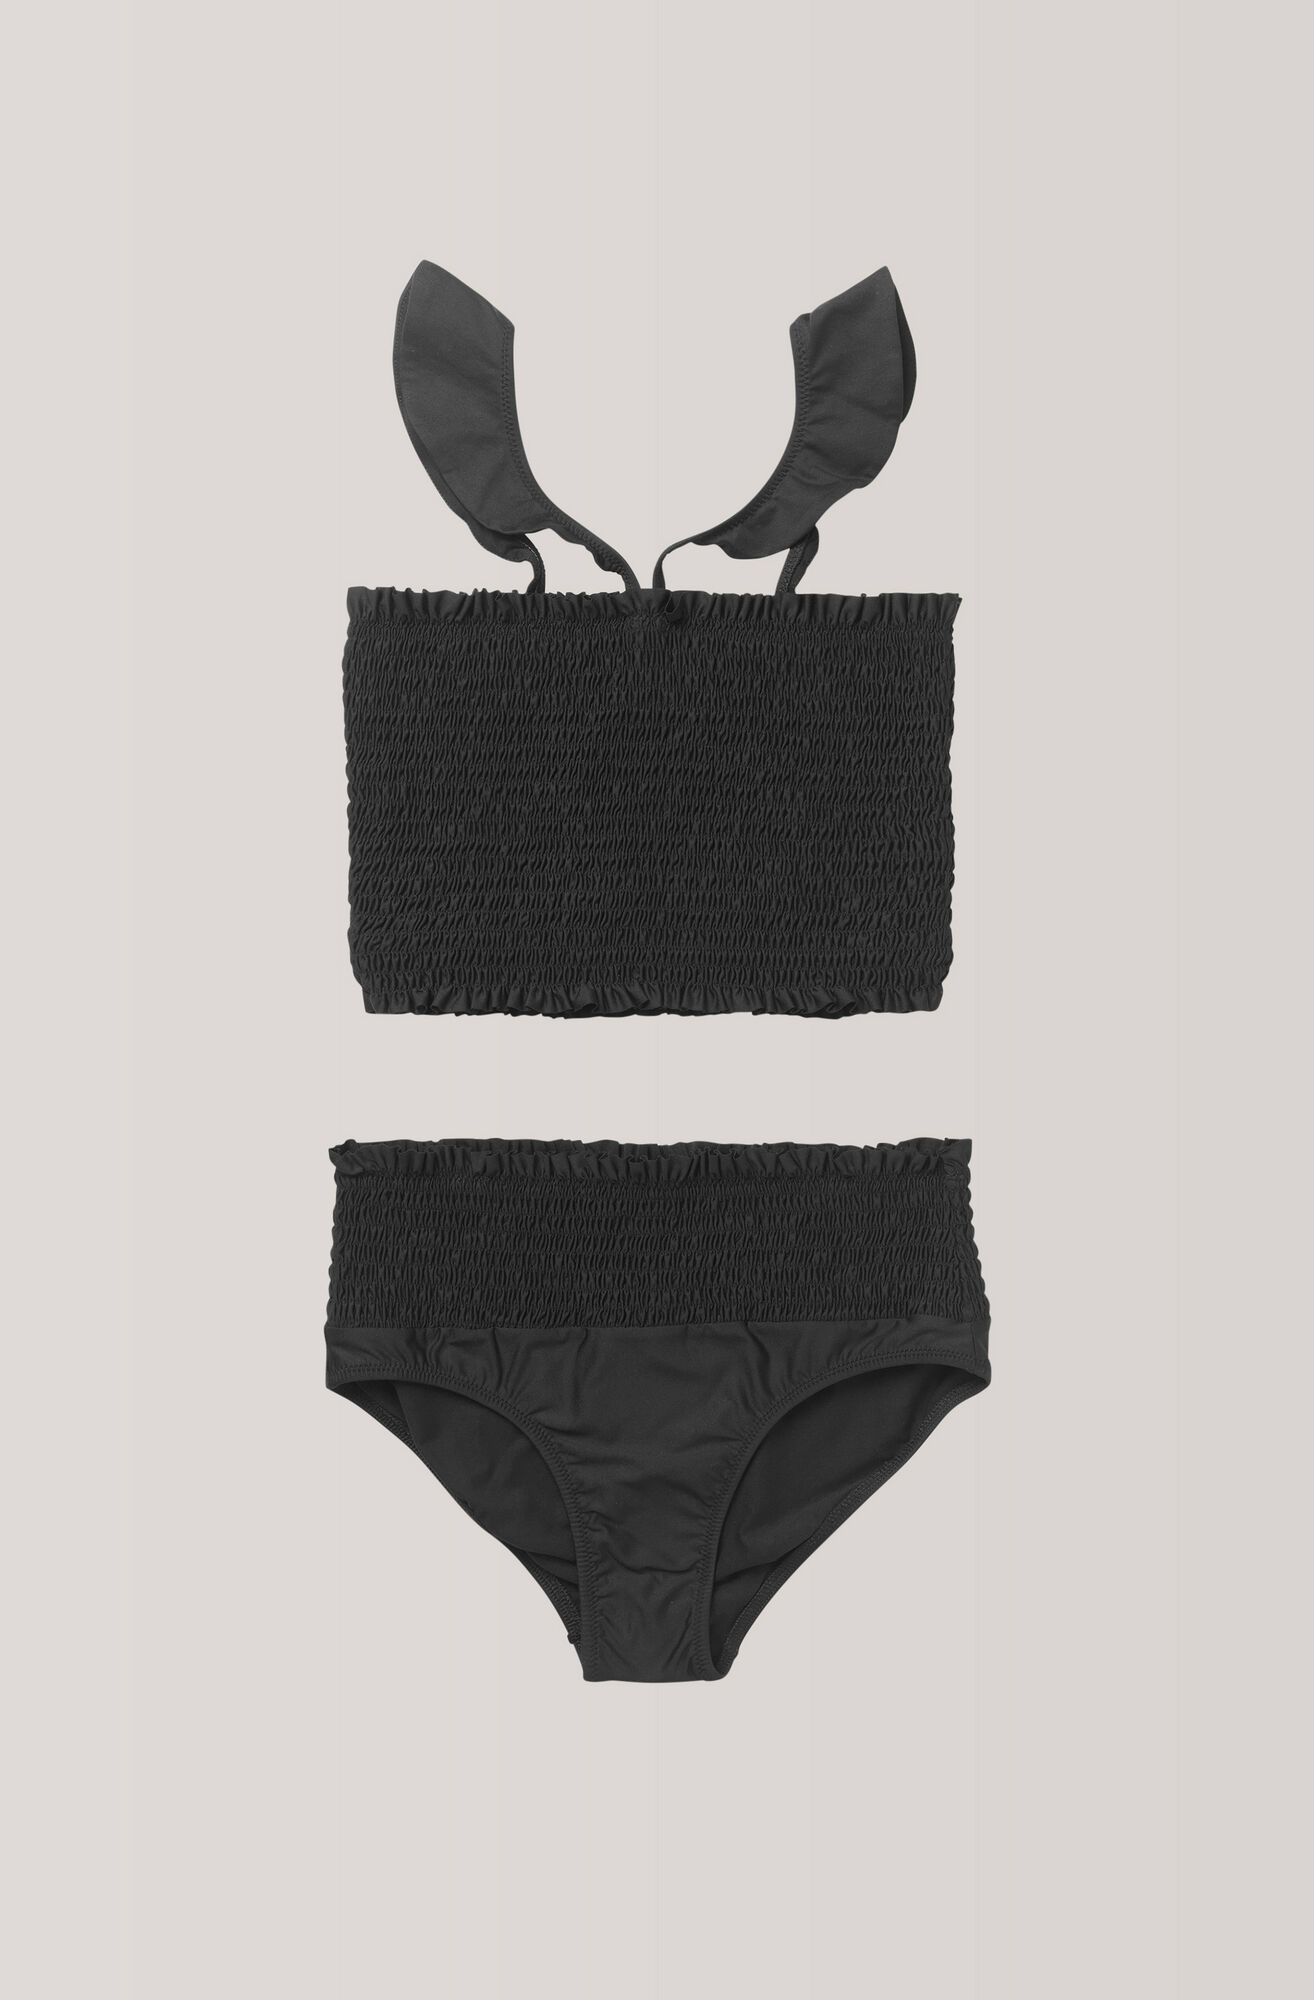 Ipanema Swimwear Solid Bikini, Black, hi-res